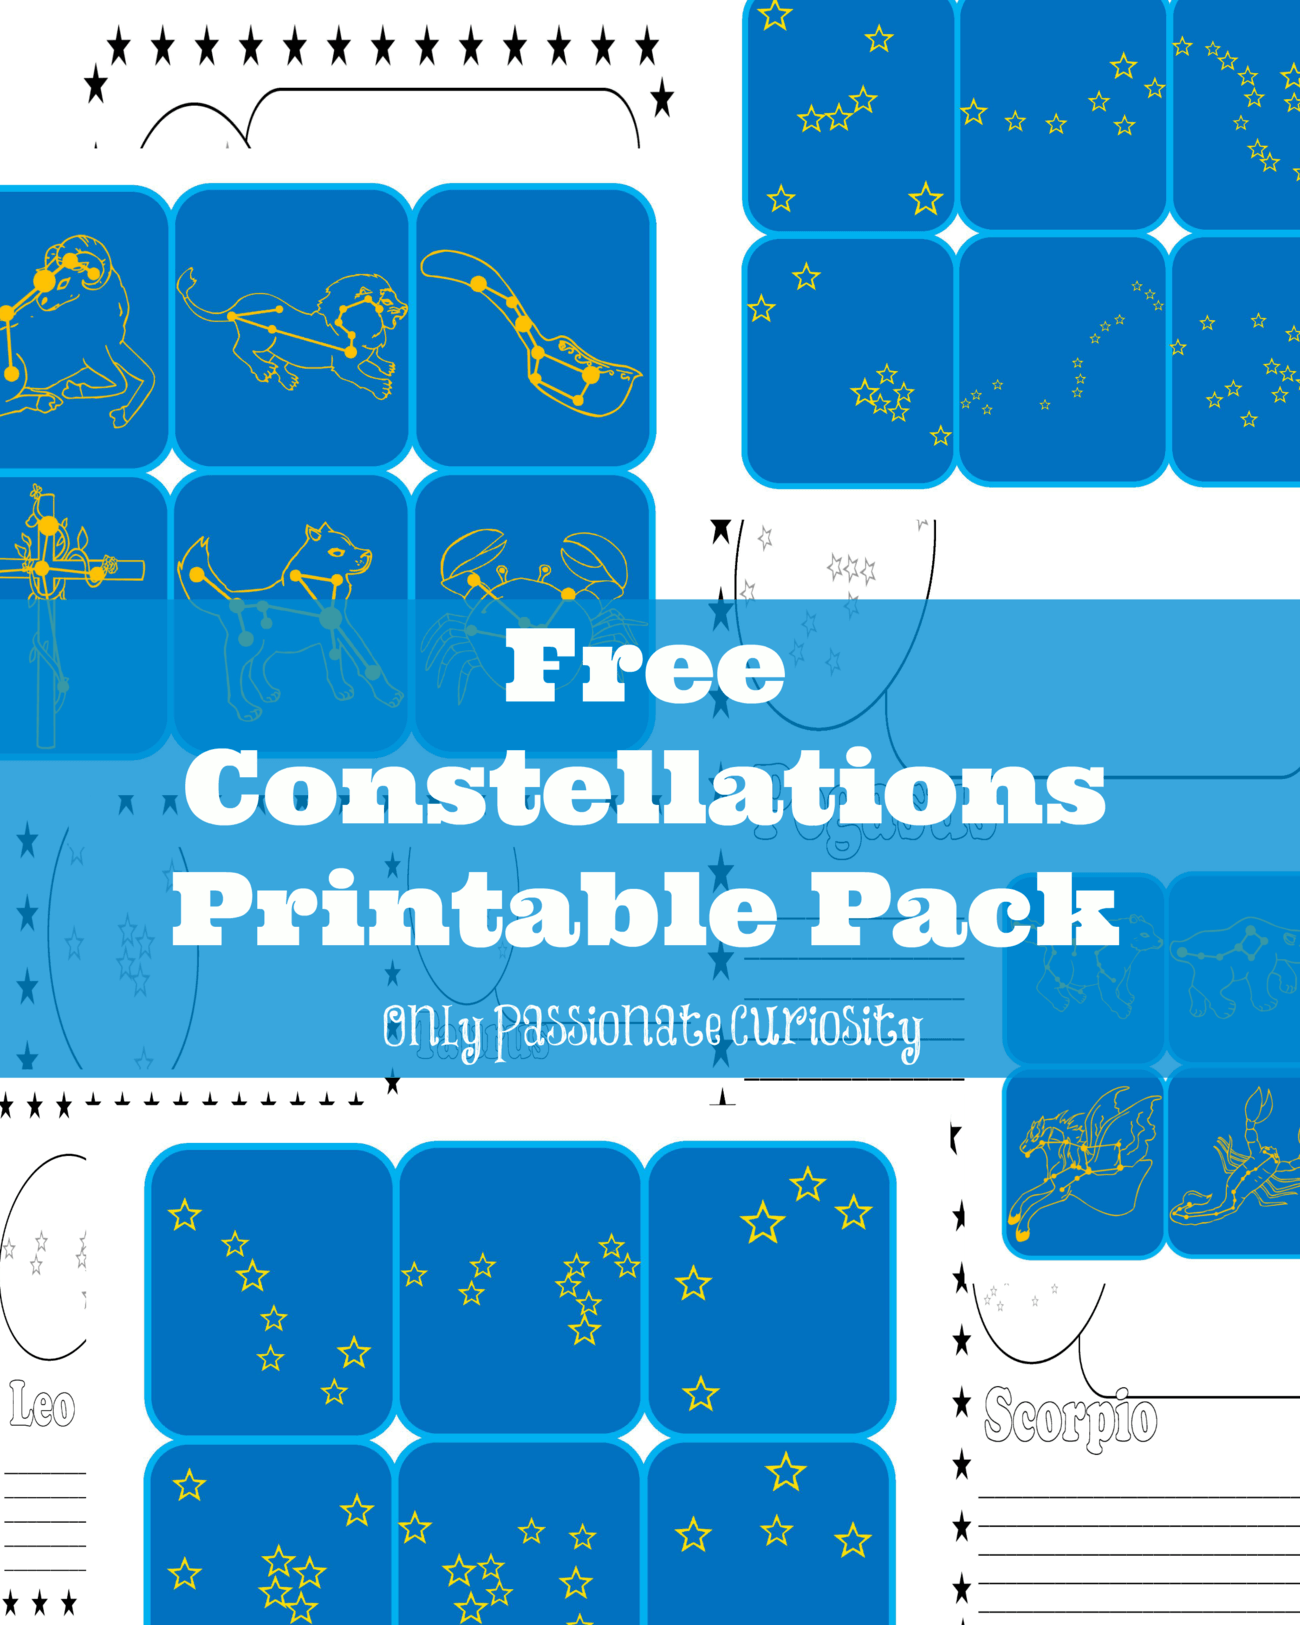 Learning About Constellations Free Printable Pack